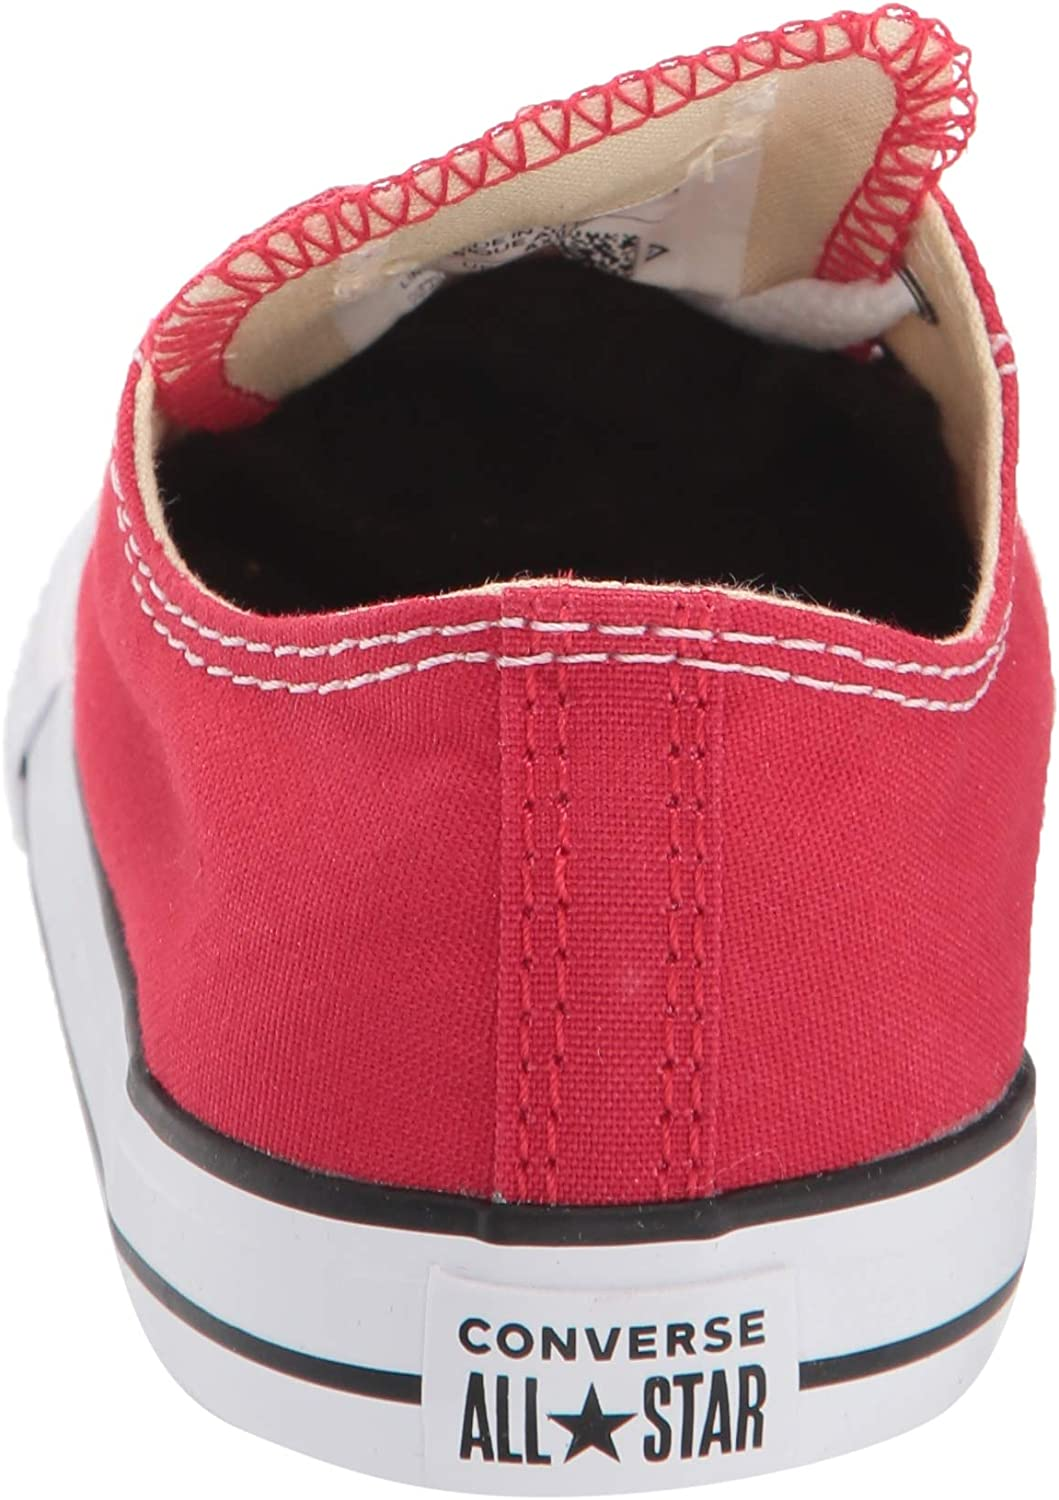 converse all star blanche taille 22